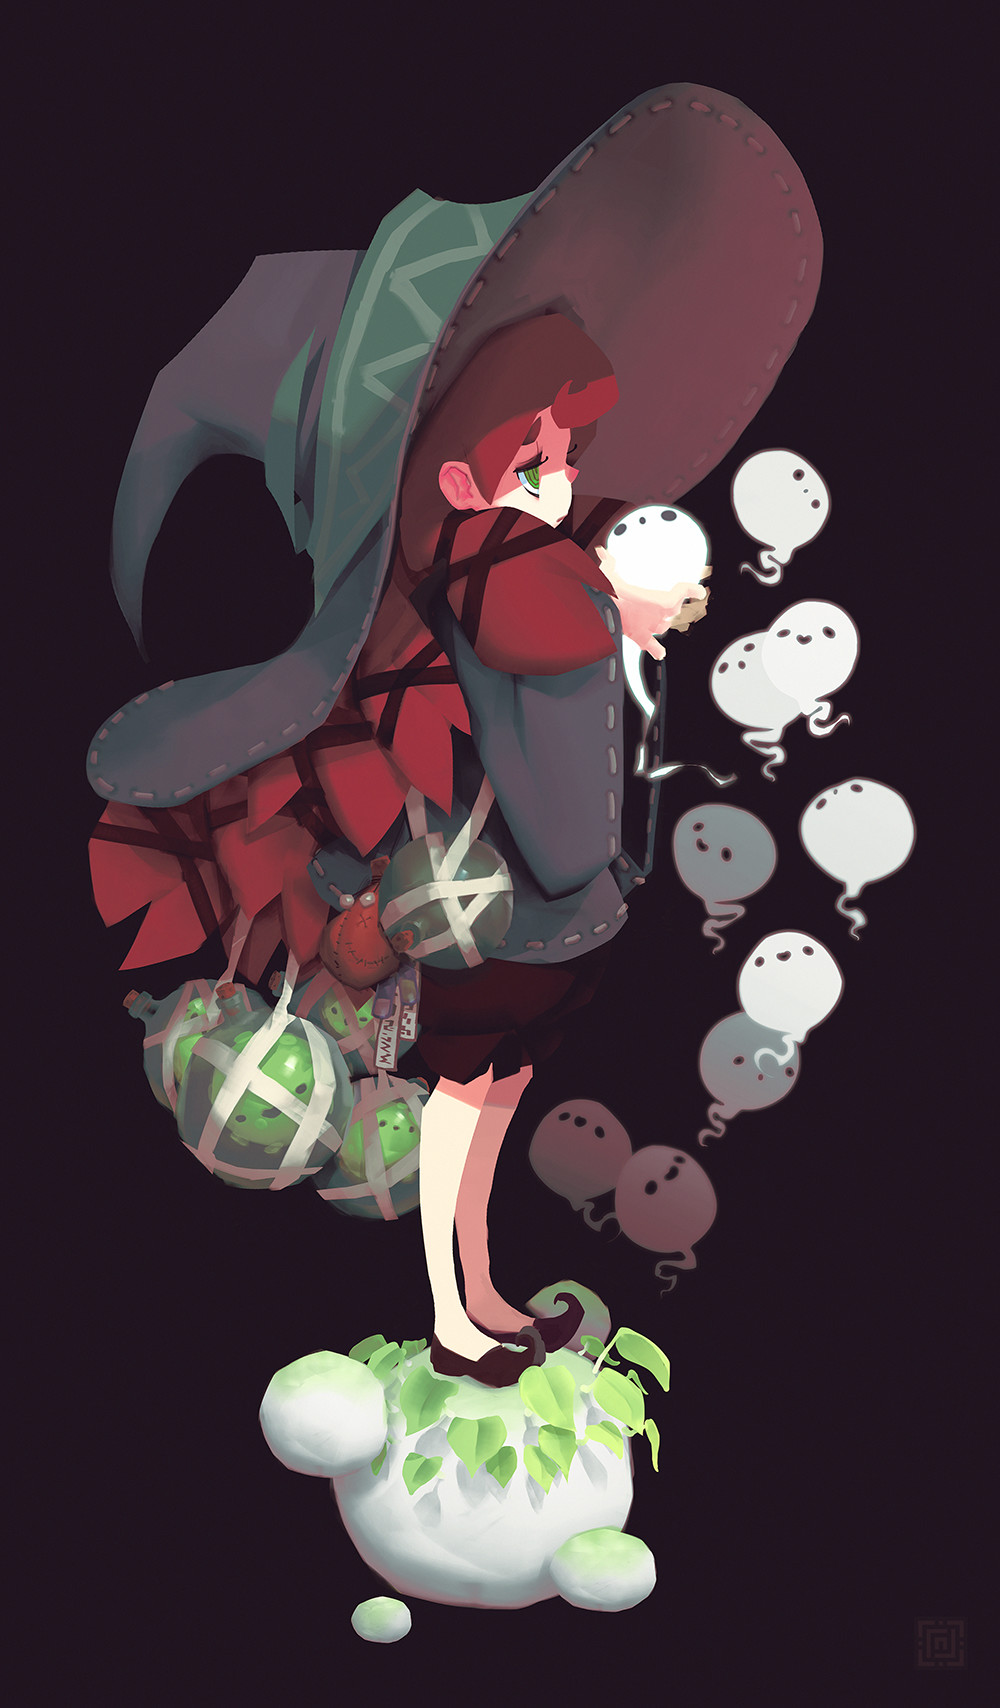 Deadslug_digital_painting_illustration_girl_witch_spirits